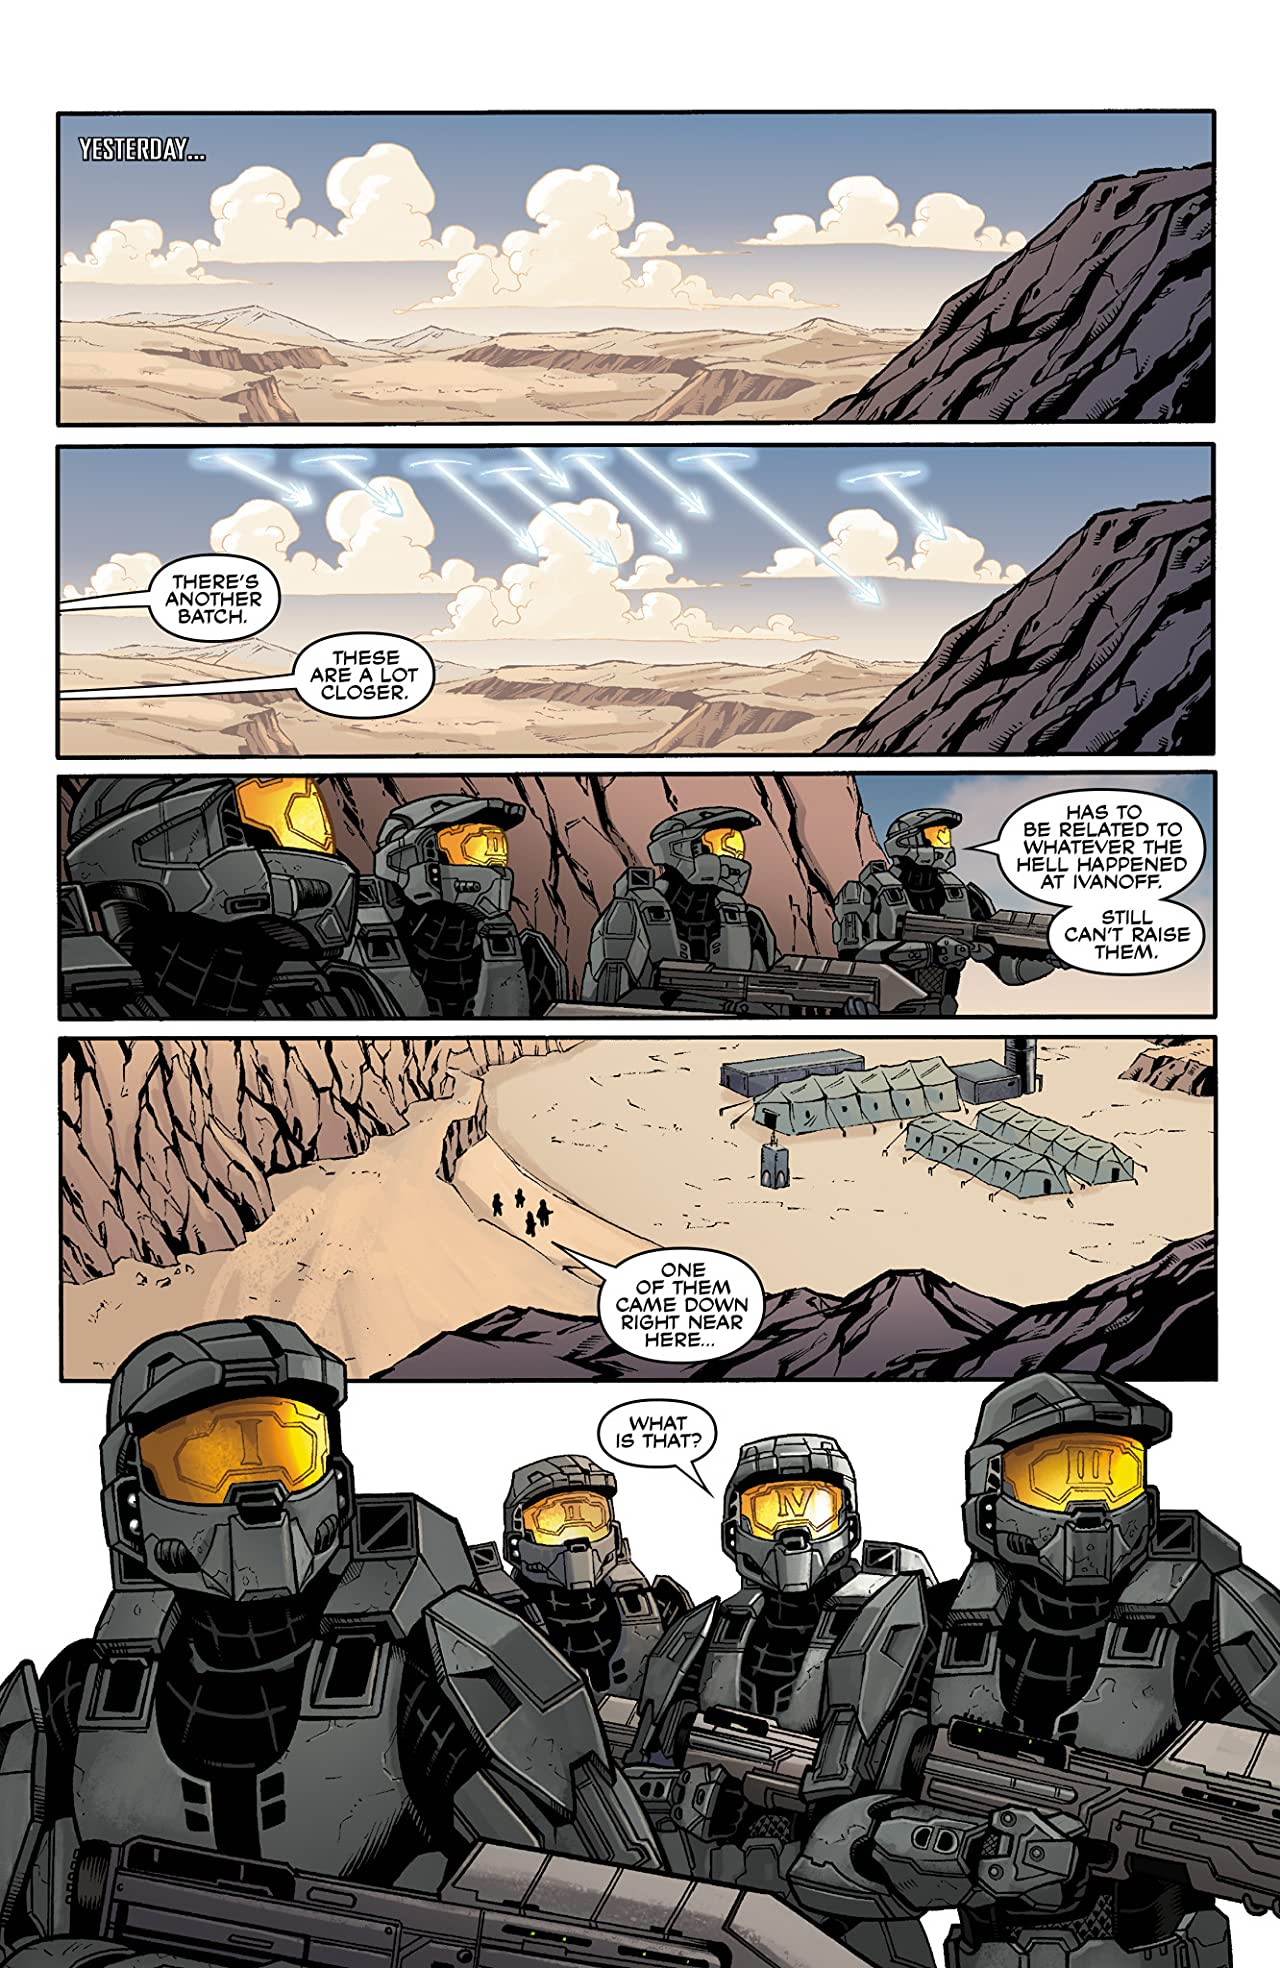 Halo: Escalation #9